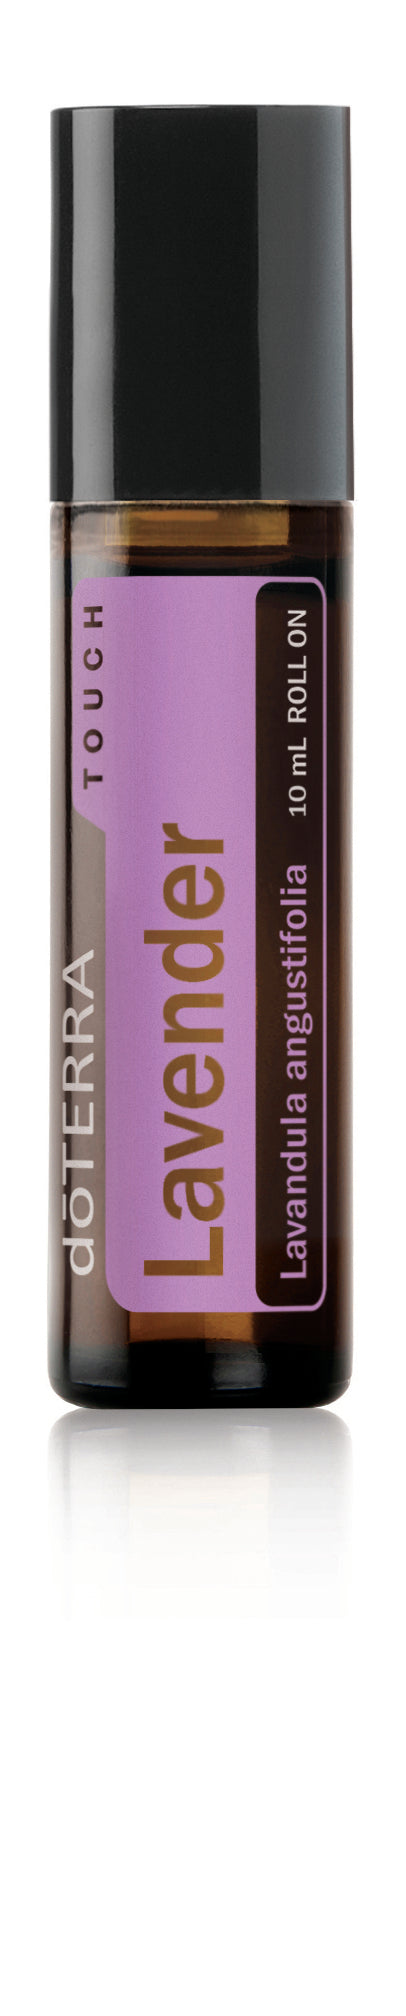 Lavender Touch Roll-On